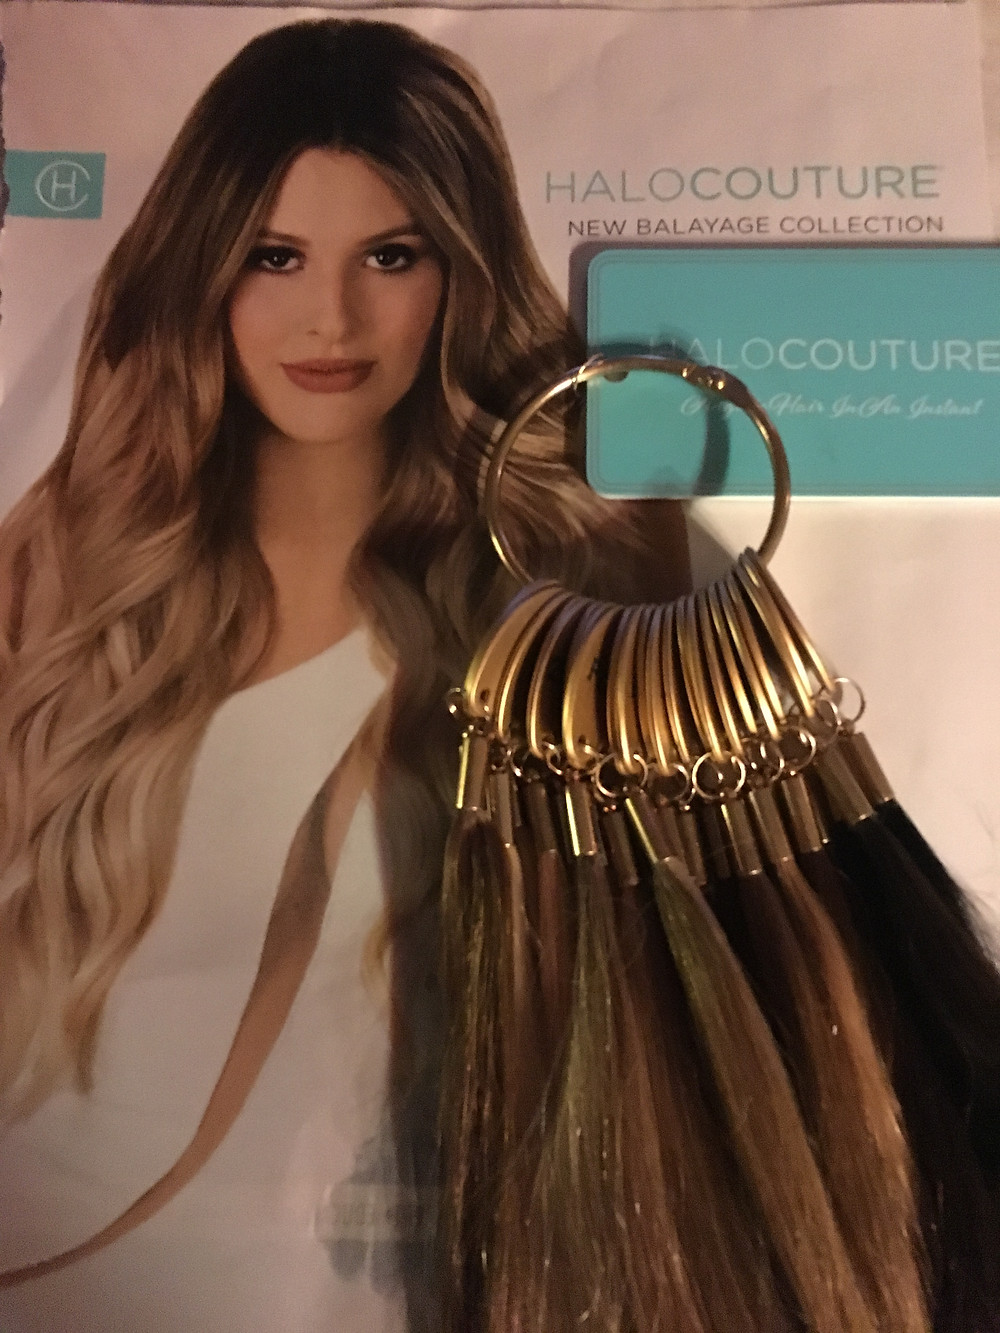 and excited to announce the new arrival of Halocouture's lastest hair extensions colors...Balayage!!!!  Halocouture 100% Human Hair Extensions come in 23 different colors but now there are seven new colors within the balayage line.  Balayage is a technique for highlighting the hair in which the color is painted on, in such a way as to create a graduated, natural-looking effect.  All seven new balayage colors are lighter towards the end of the extension which are all beautiful.  HaloCouture Extensions come in four different lengths - 12 inch, 16 inch, 20 inch, and 24 inches. They are a basic equivalent to a full head of hair, adding about 70-120 grams of hair. HaloCouture can be worn daily or just for special occasions and remove the extension as easily as applying the extension. HaloCou